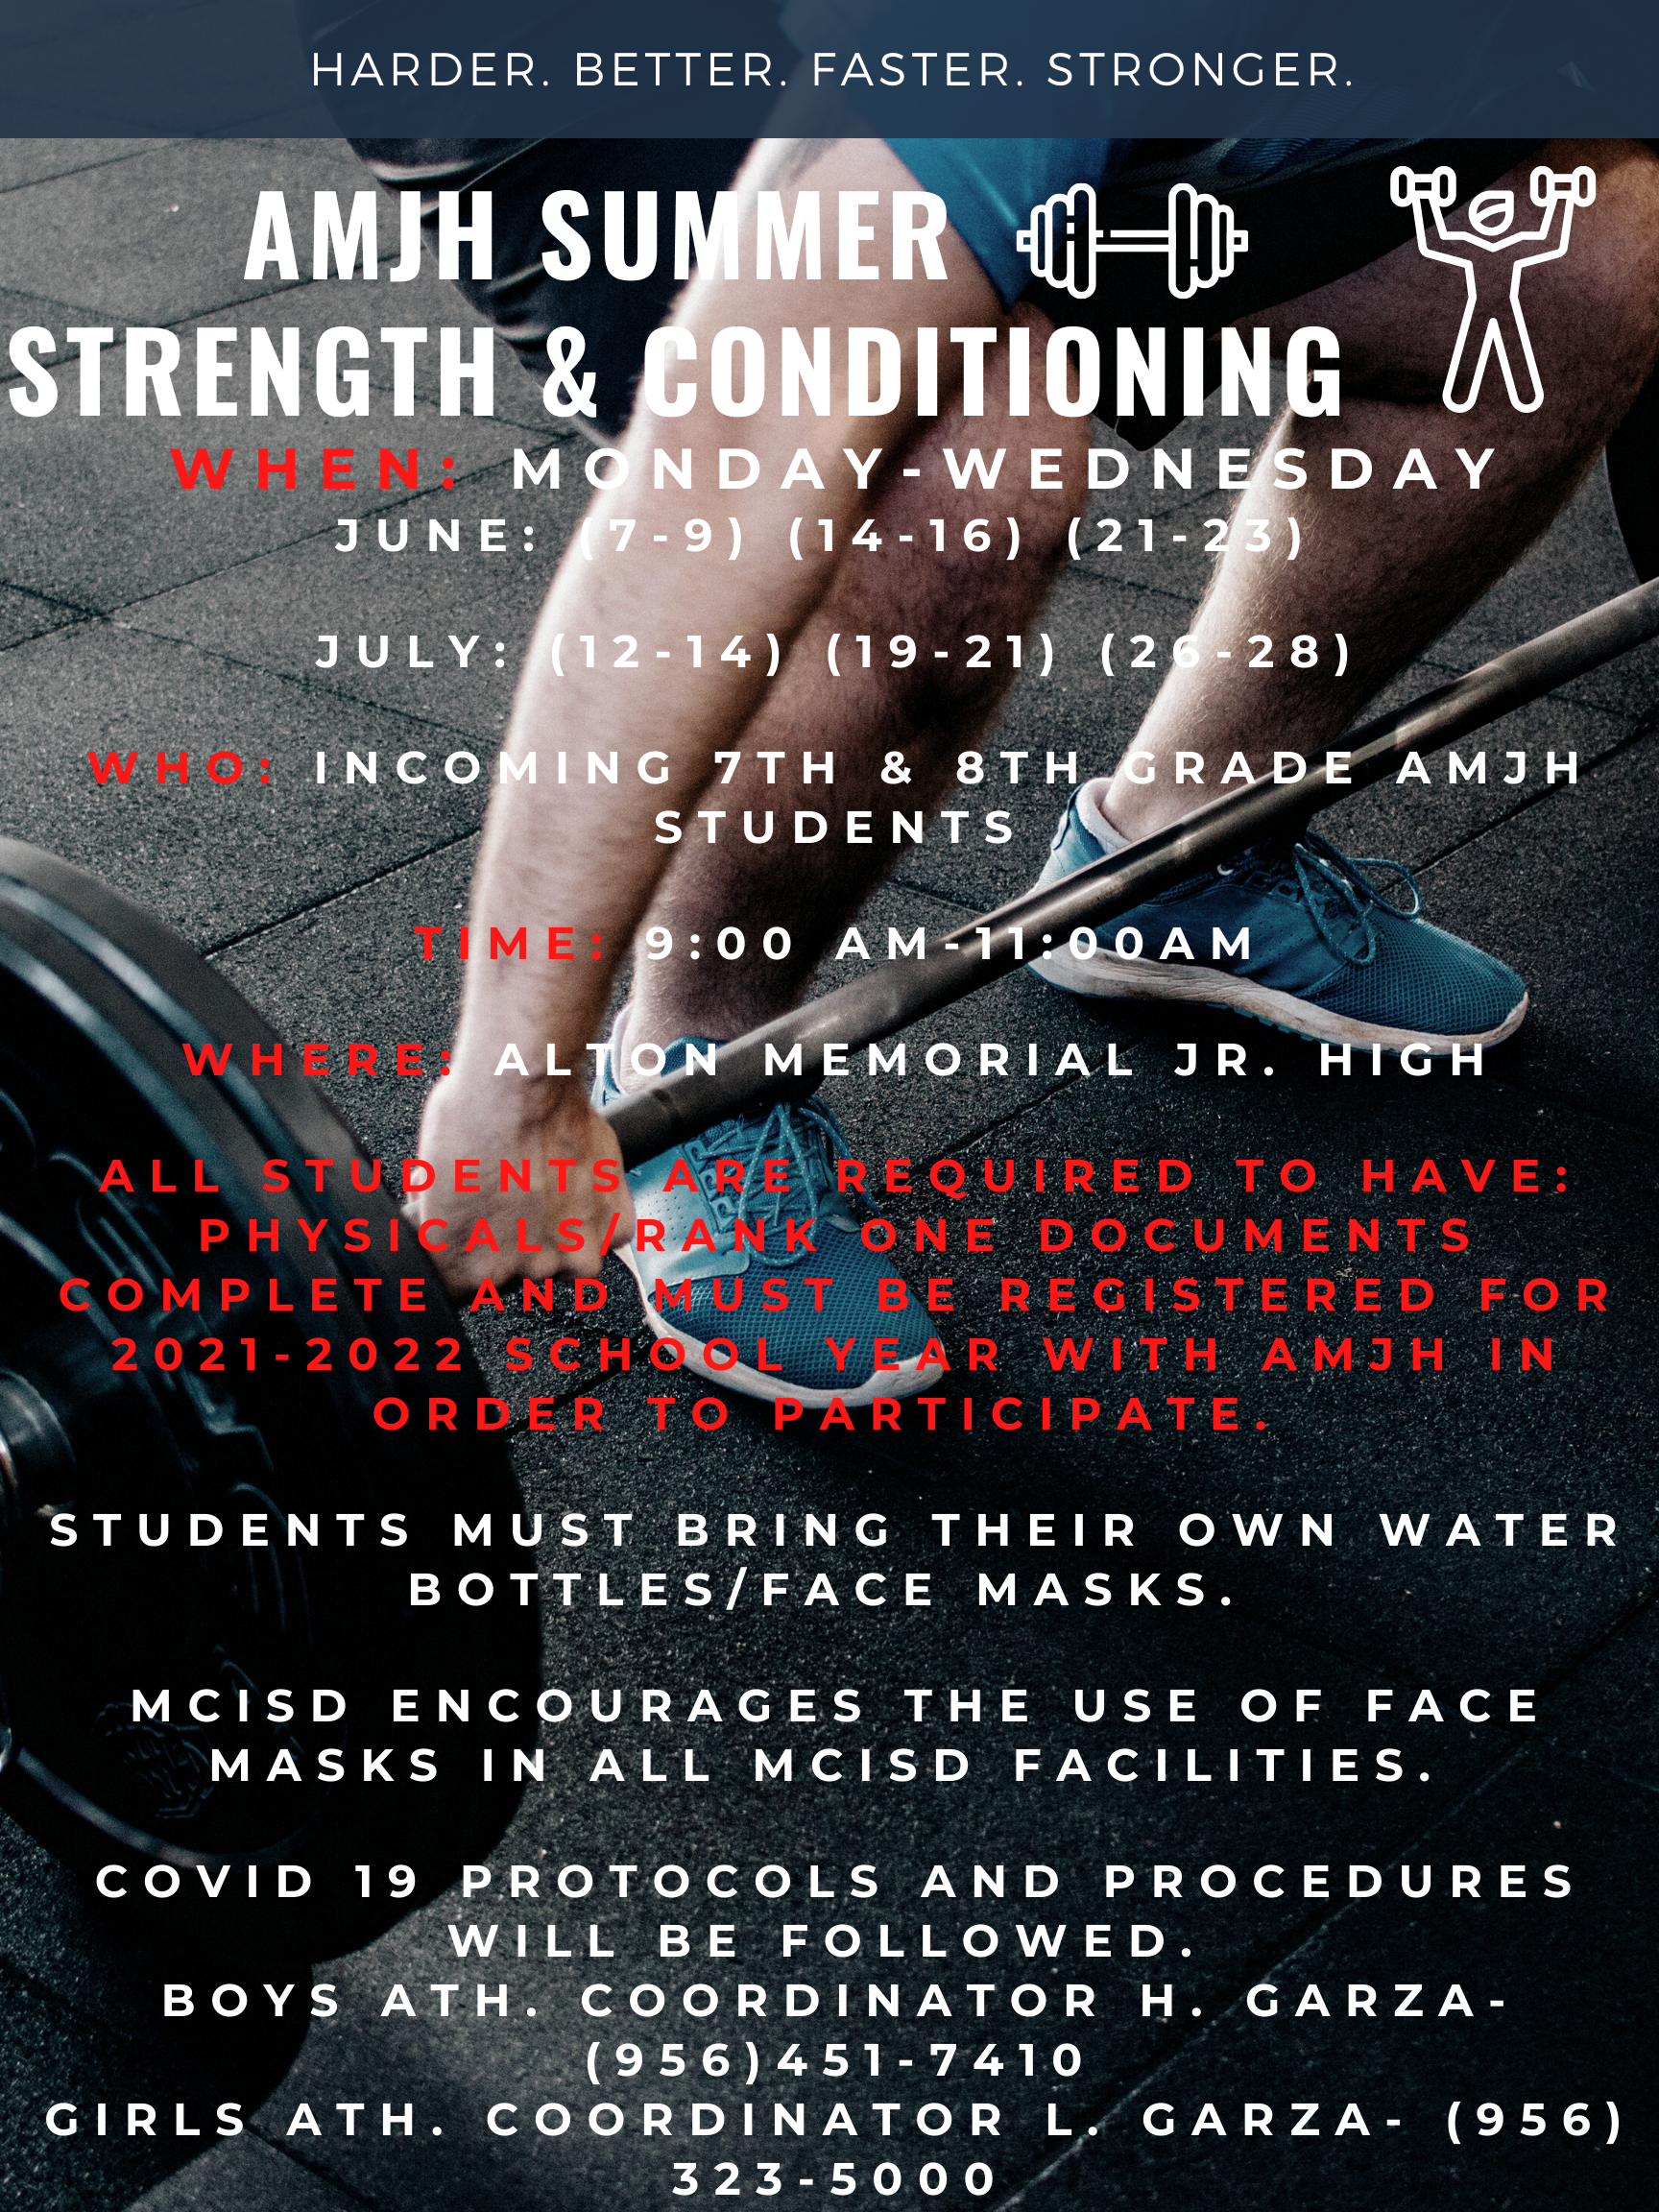 AMJH Summer Strength and Conditioning